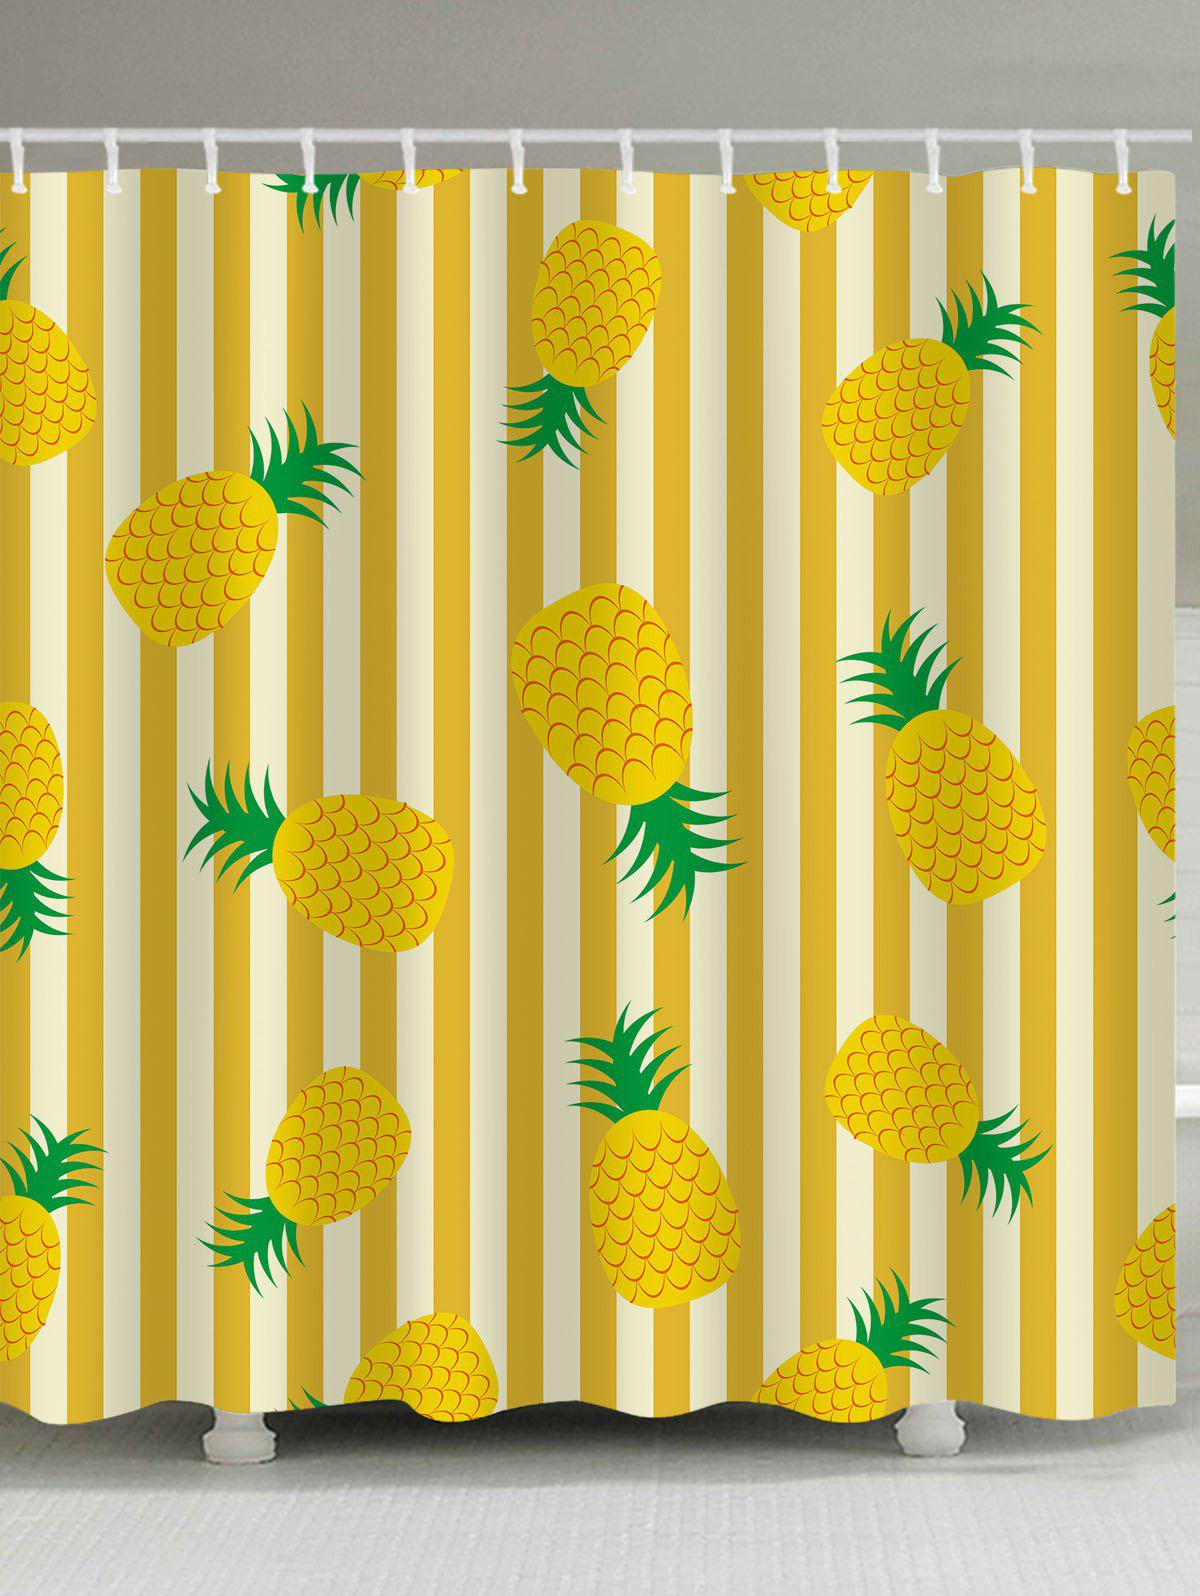 Discount Stripes Pineapples Printed Shower Curtain Bath Decor